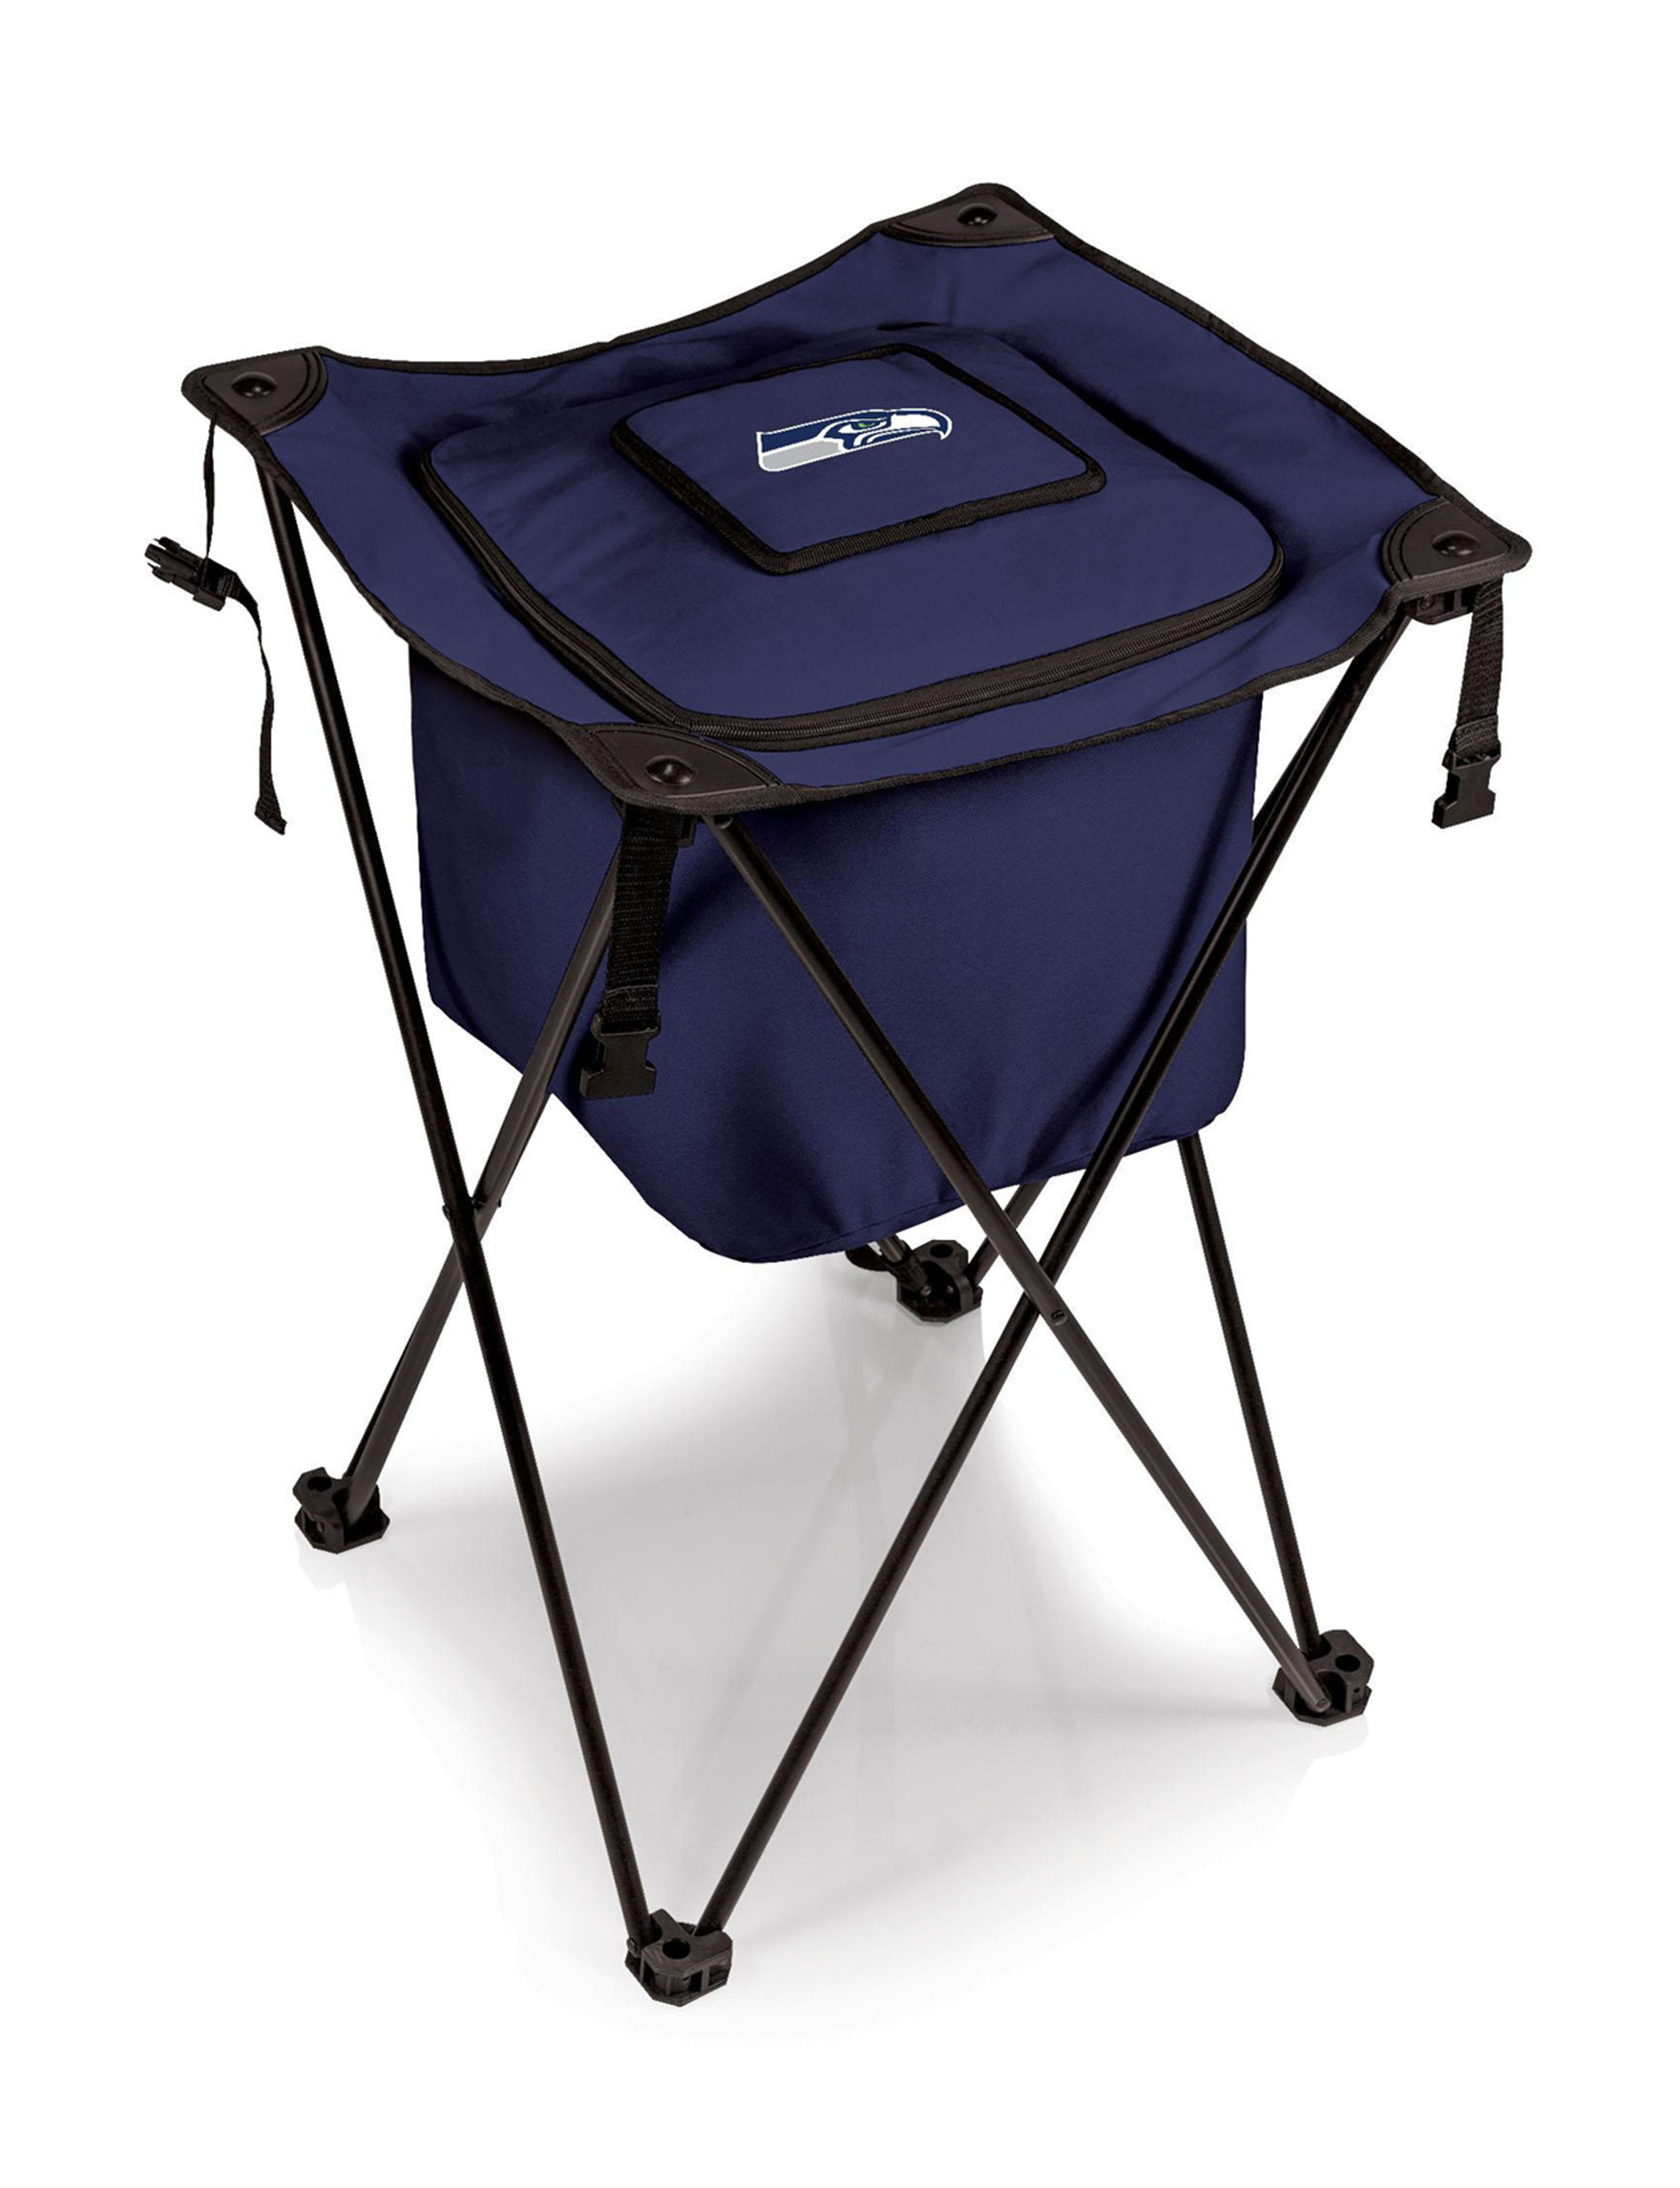 Picnic Time Navy Coolers Camping & Outdoor Gear